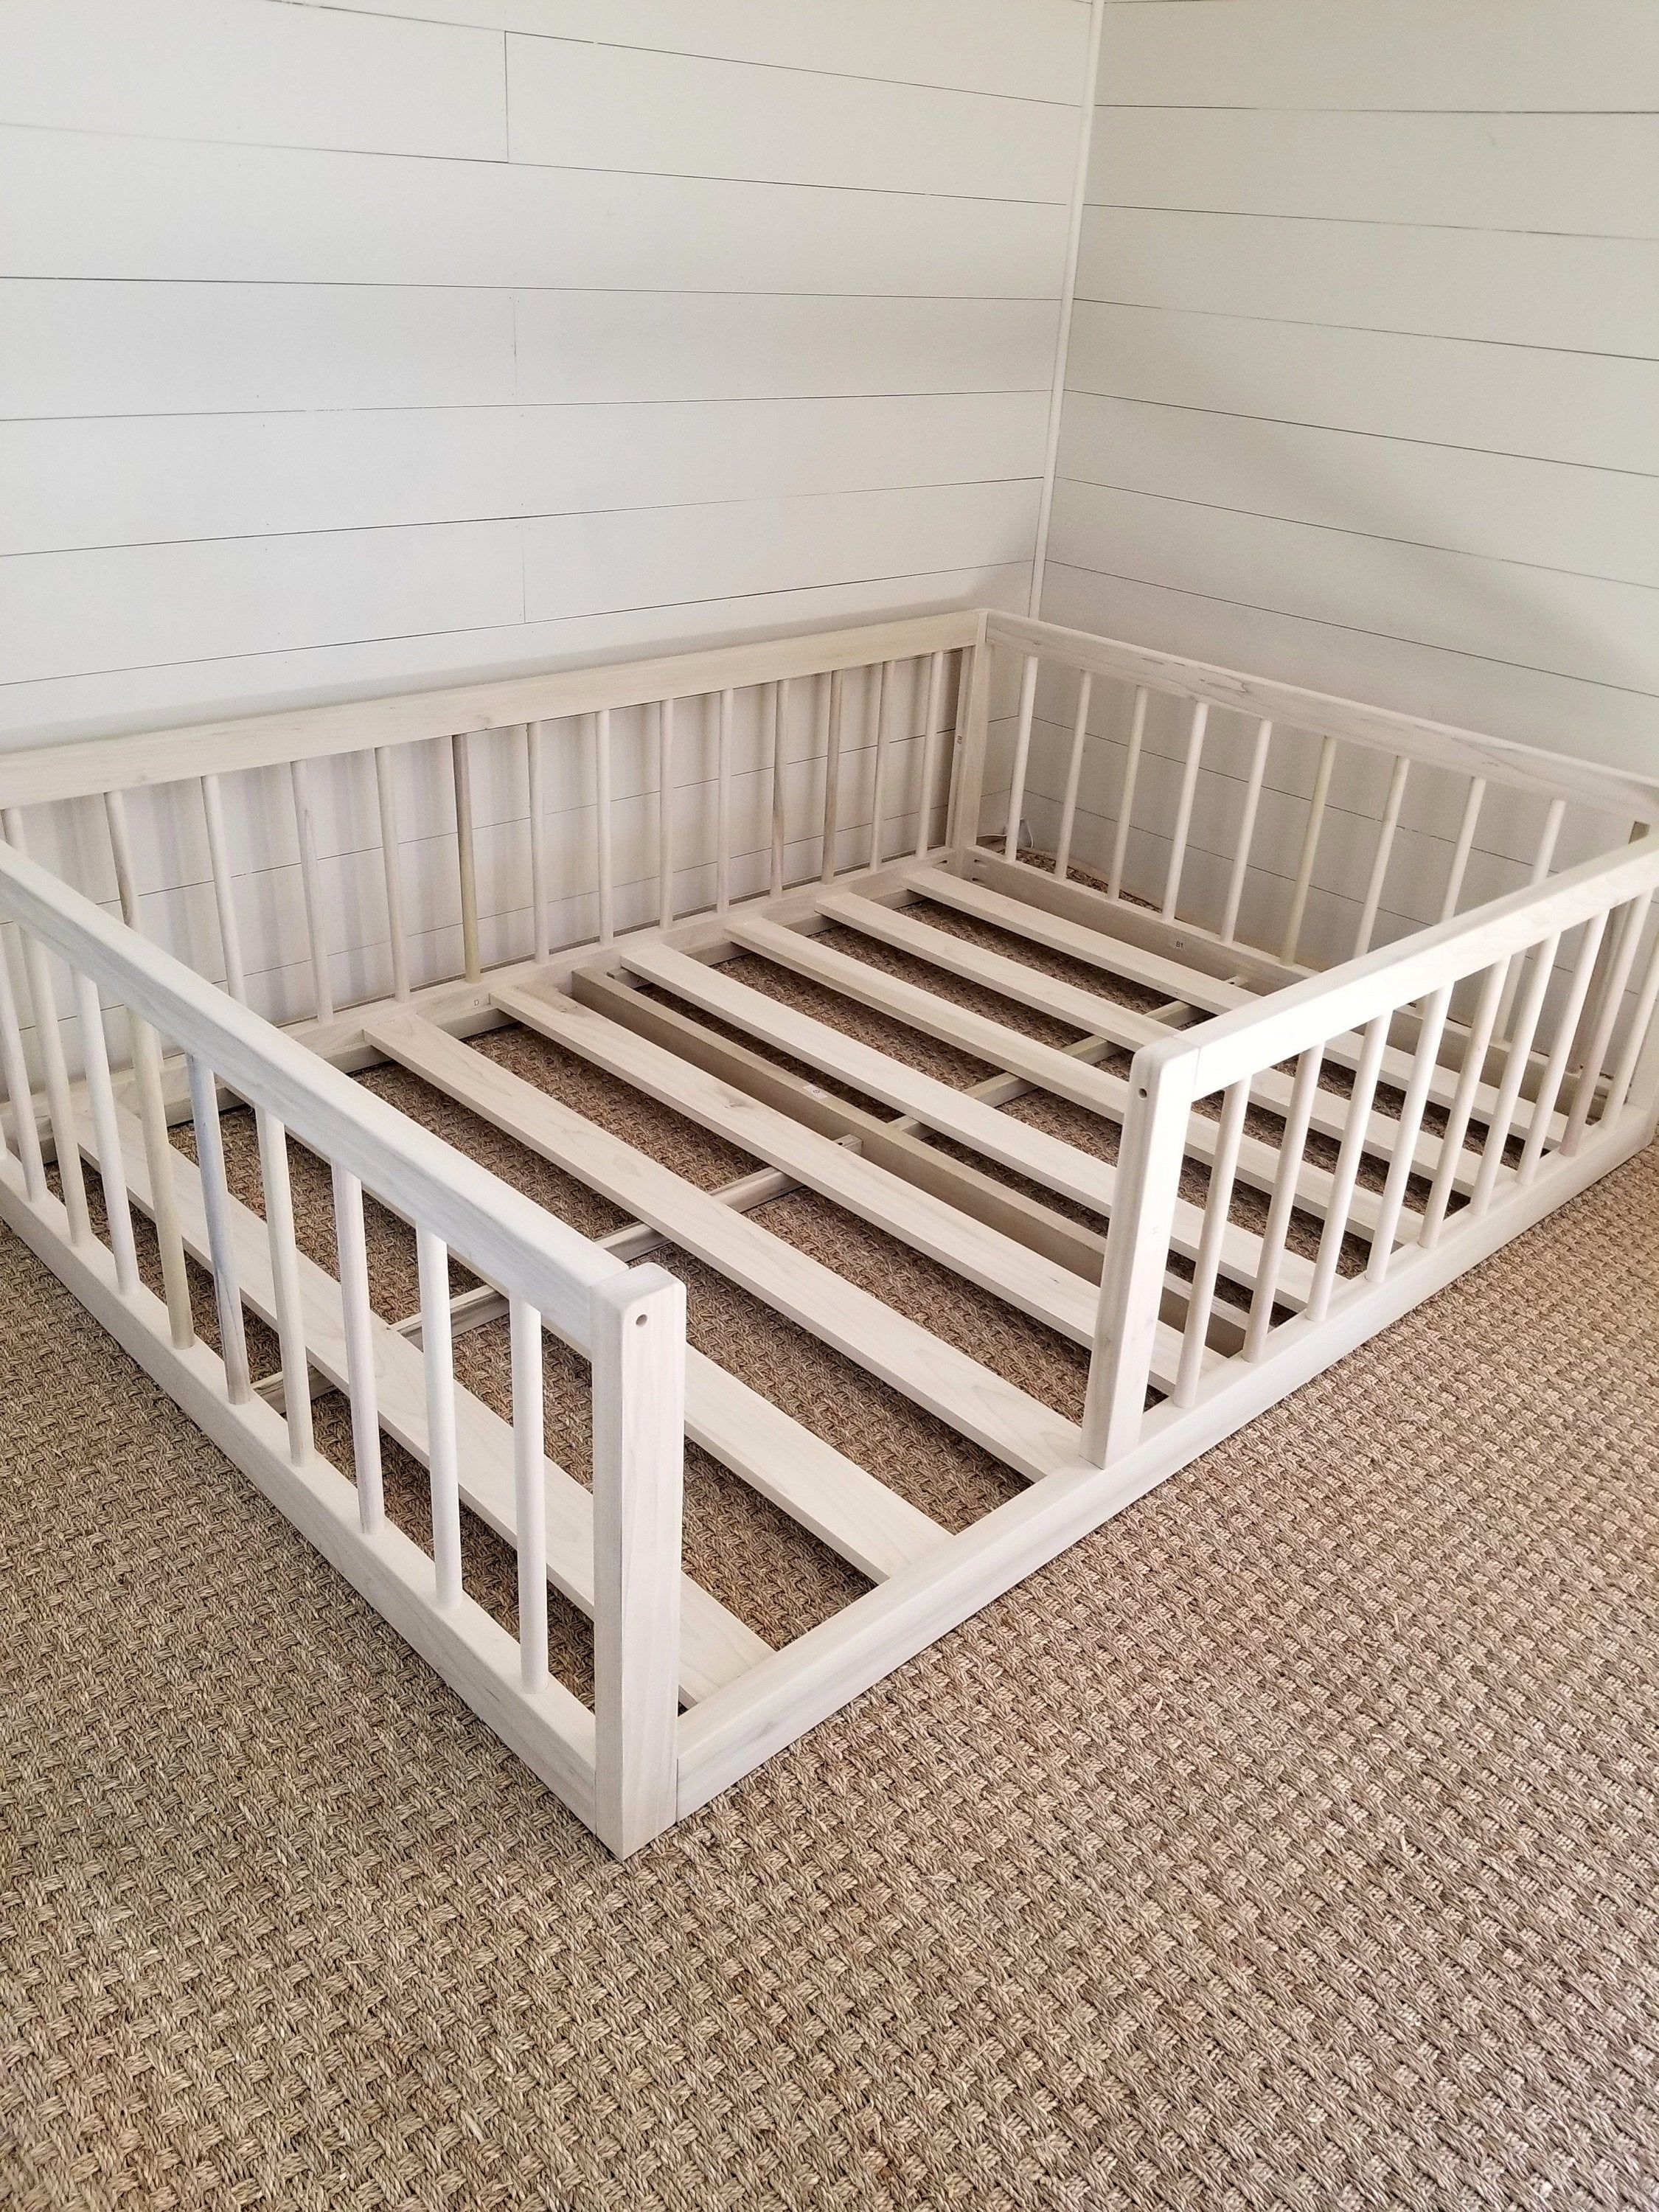 Montessori Floor Bed With Rails Full Or Double Size Floor Bed